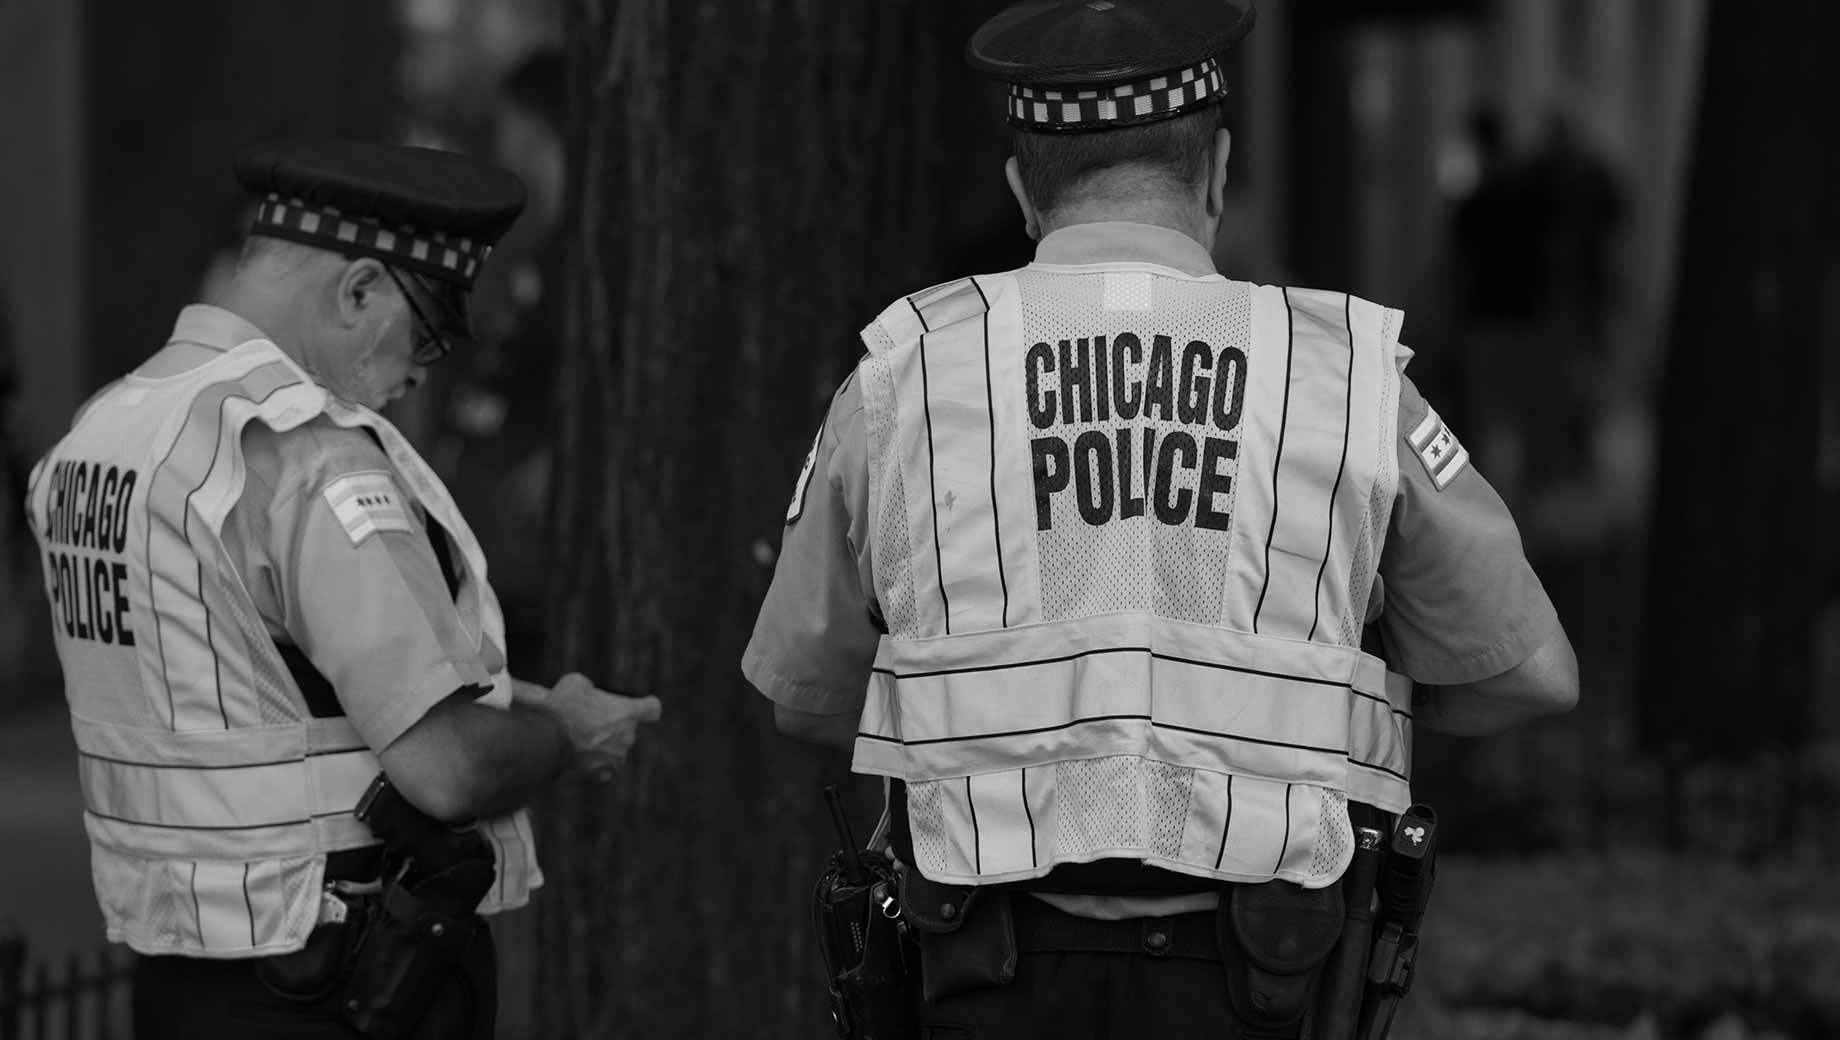 Low Trust in Police Complicates Crime Problem in Chicago